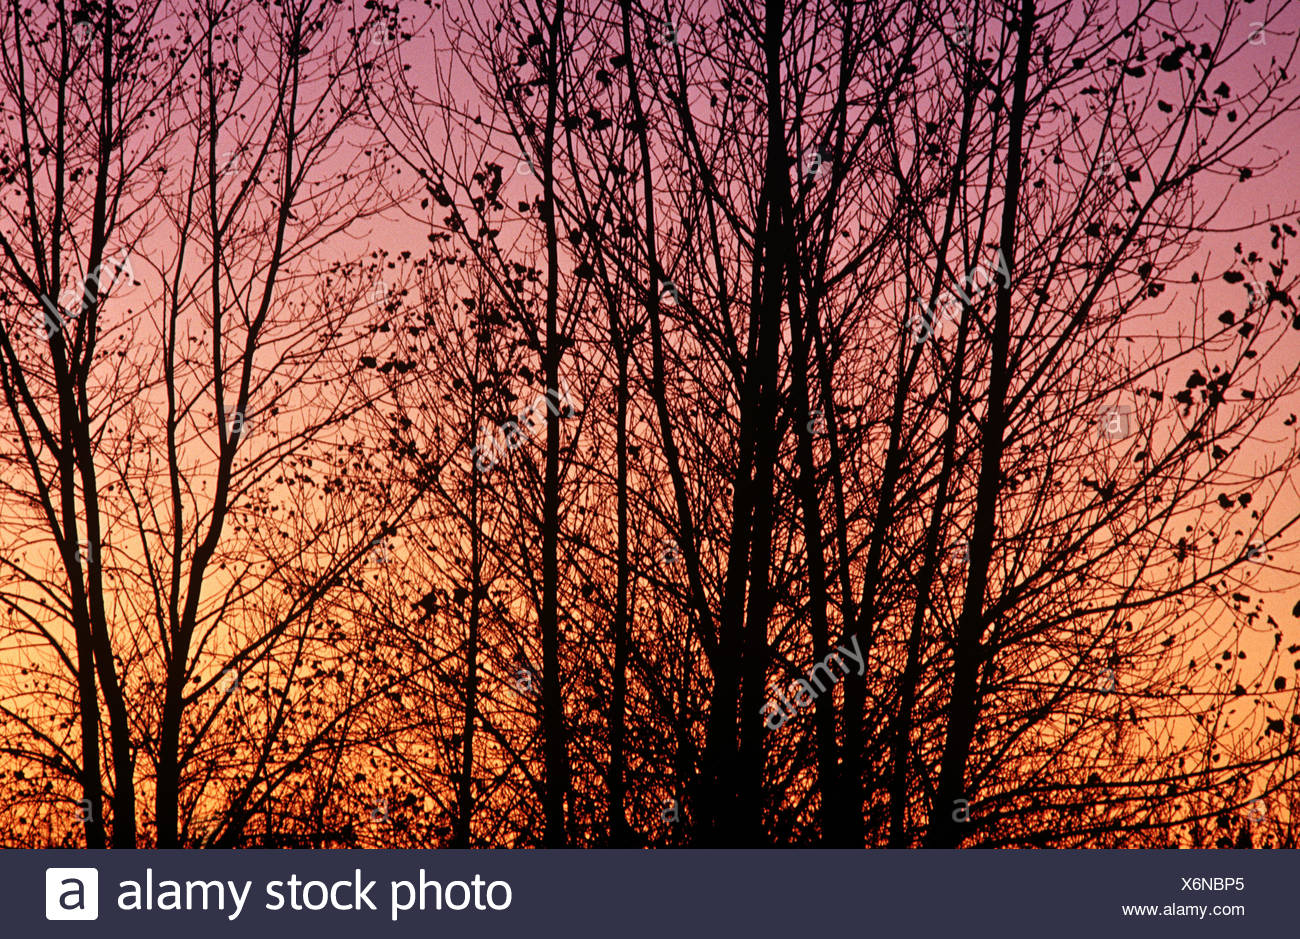 Silouetted trees - Stock Image